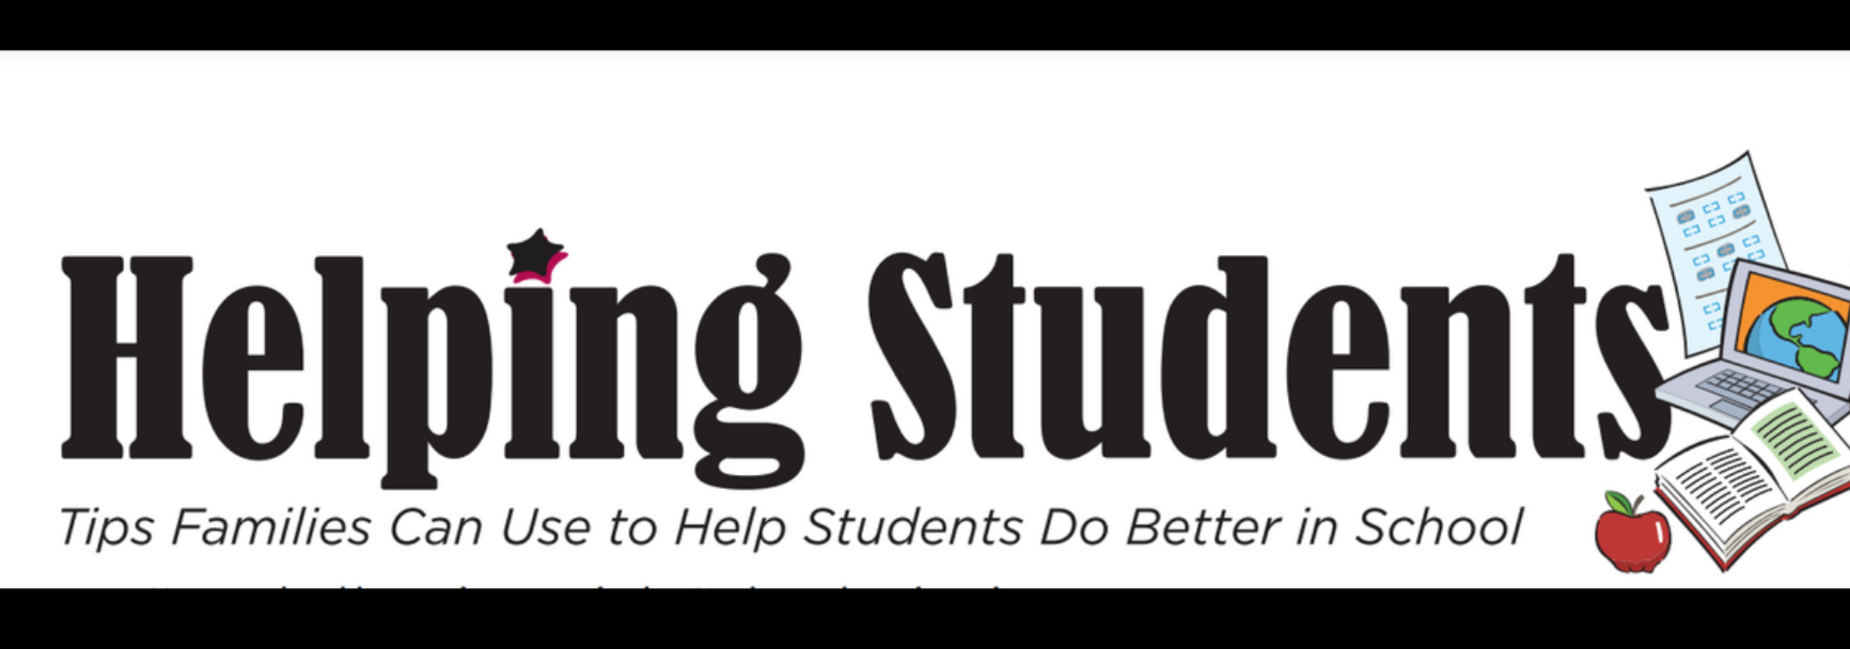 tips for helping students